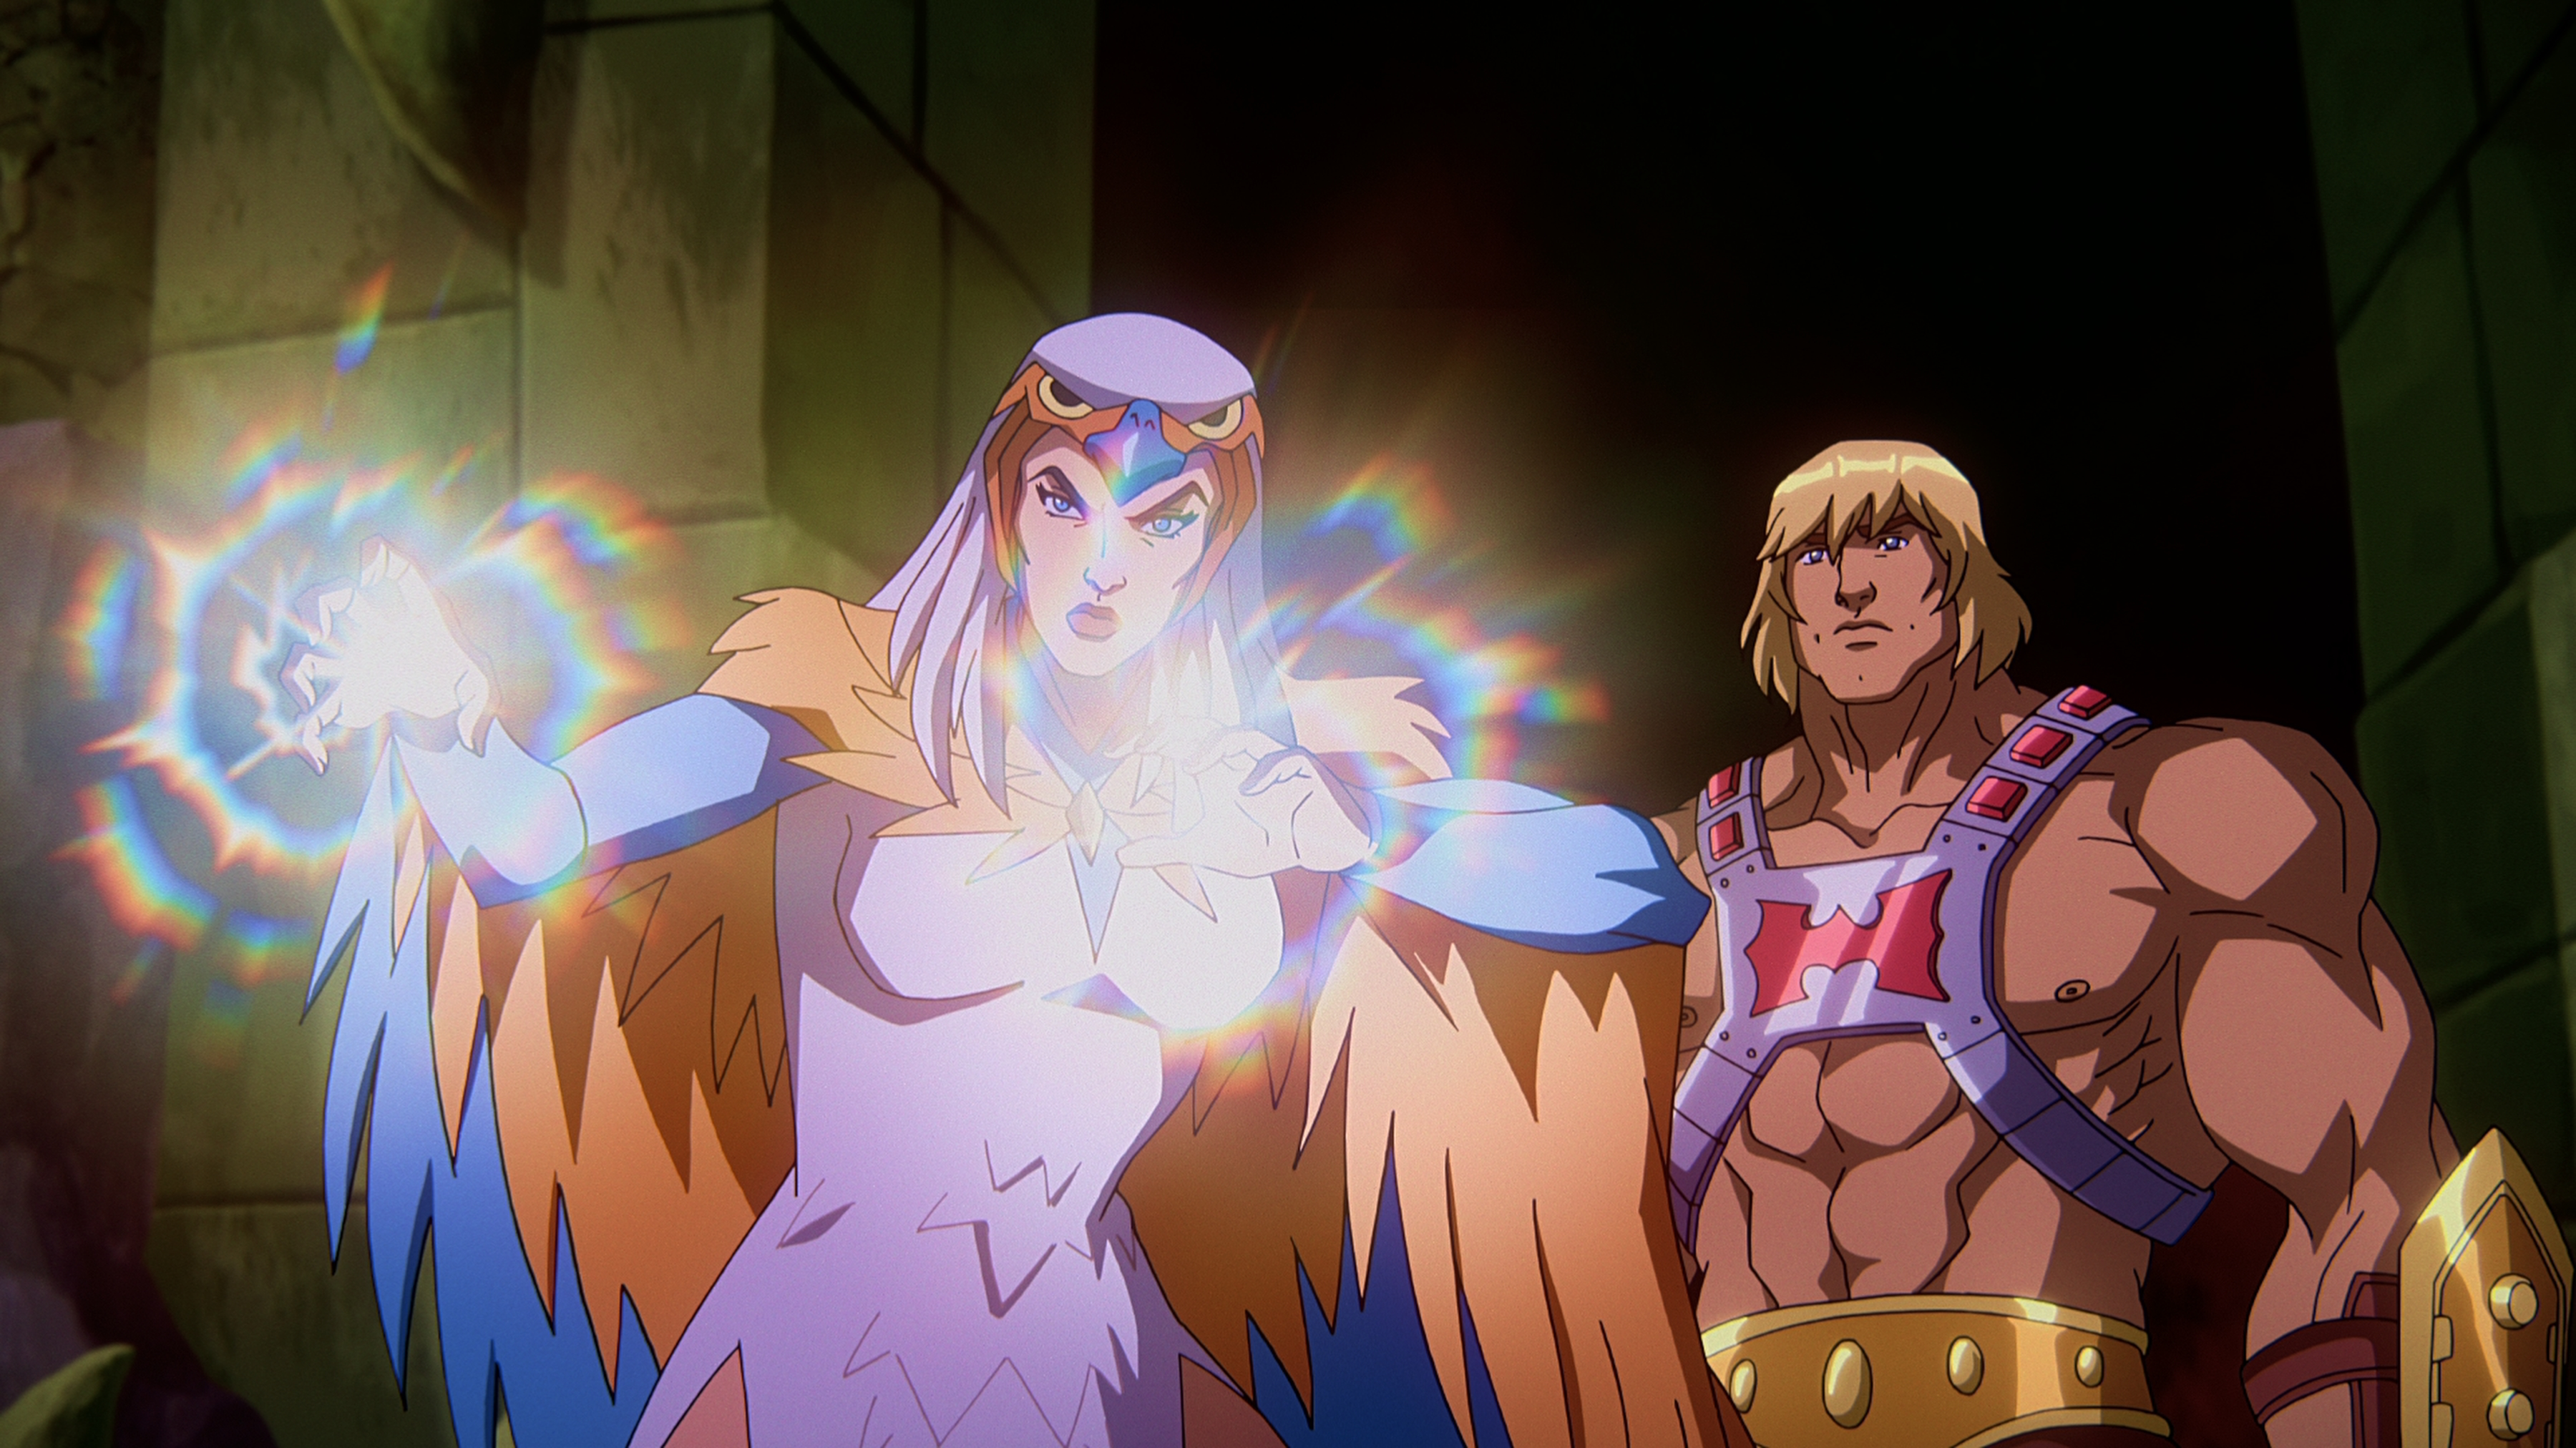 Masters of the Universe: Revelation': He-Man Revealed in First Look - Variety